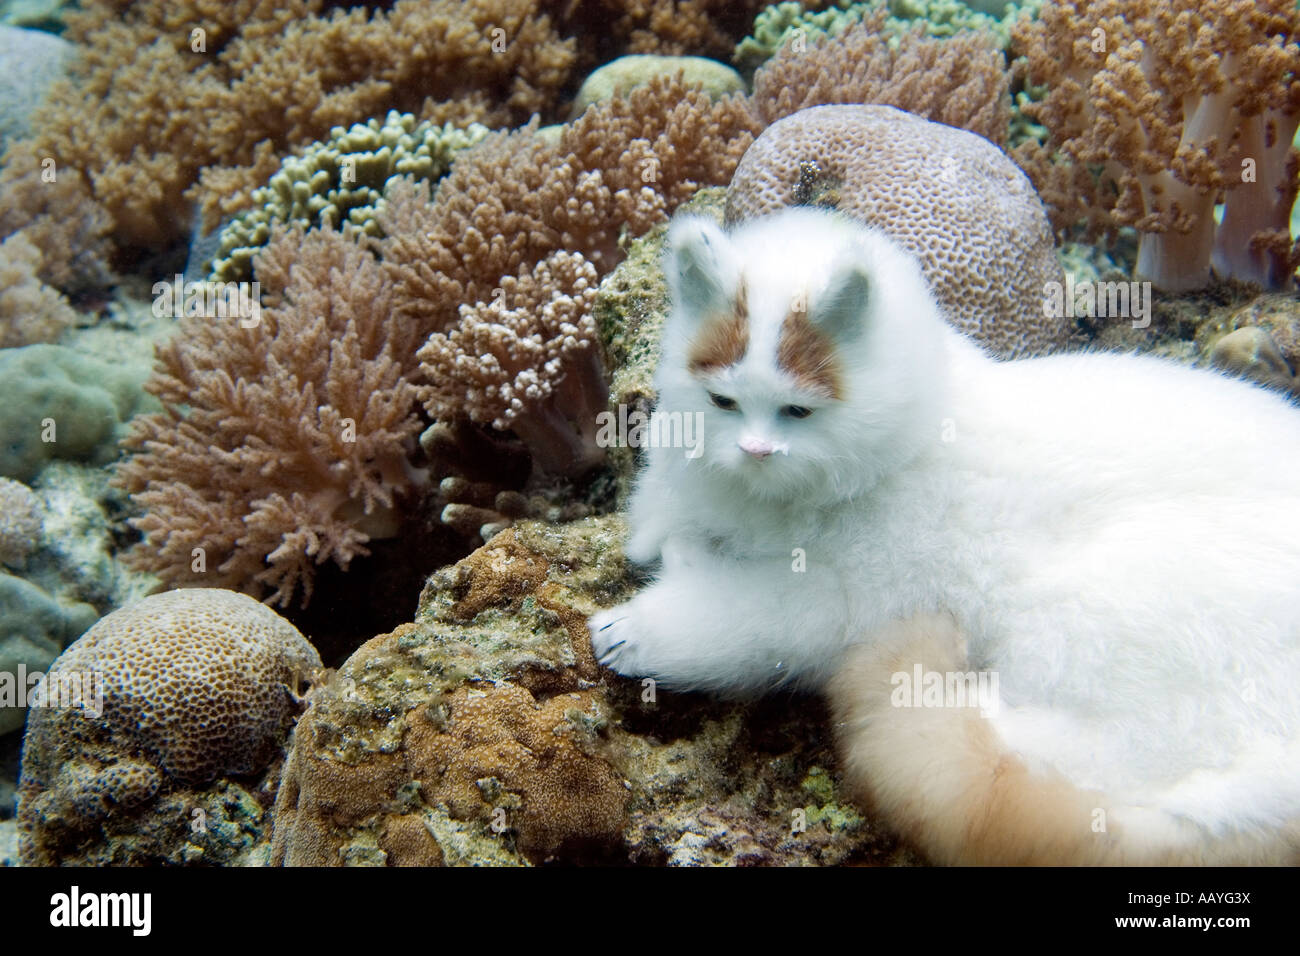 Cat underwater sitting on a coral reef - Stock Image